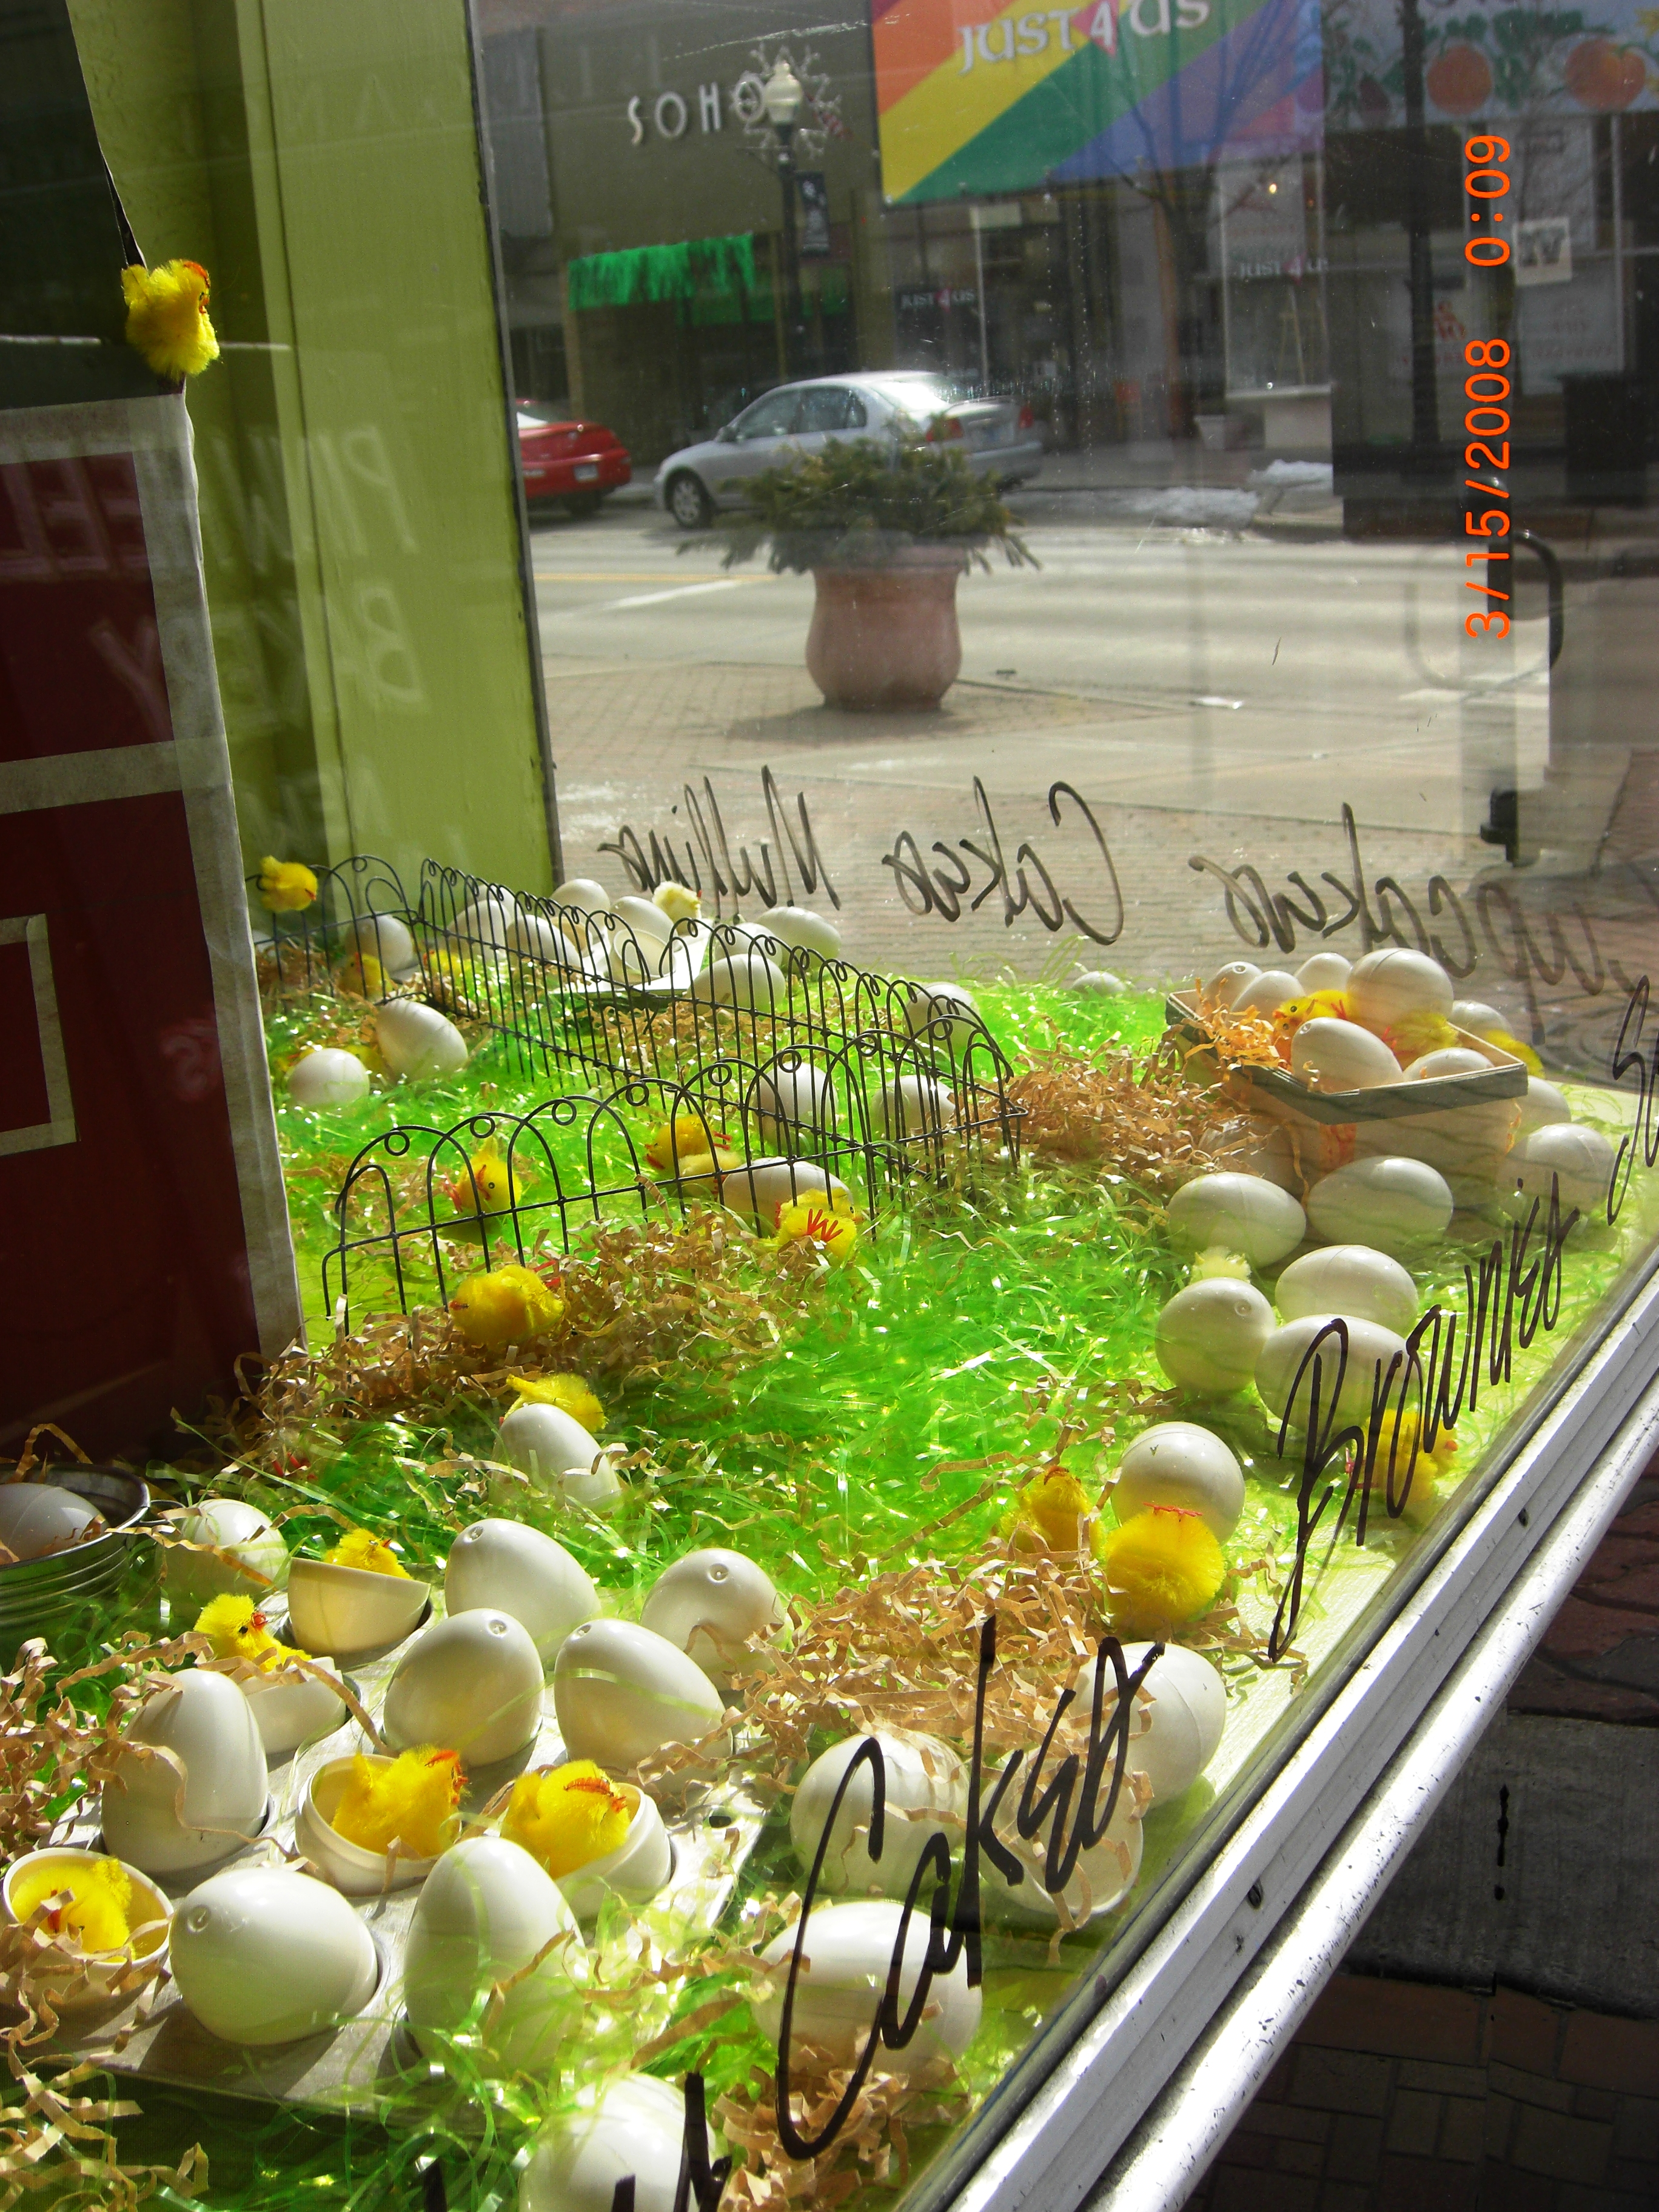 Window display ideas  pin by teal death do us part on display  pinterest  window